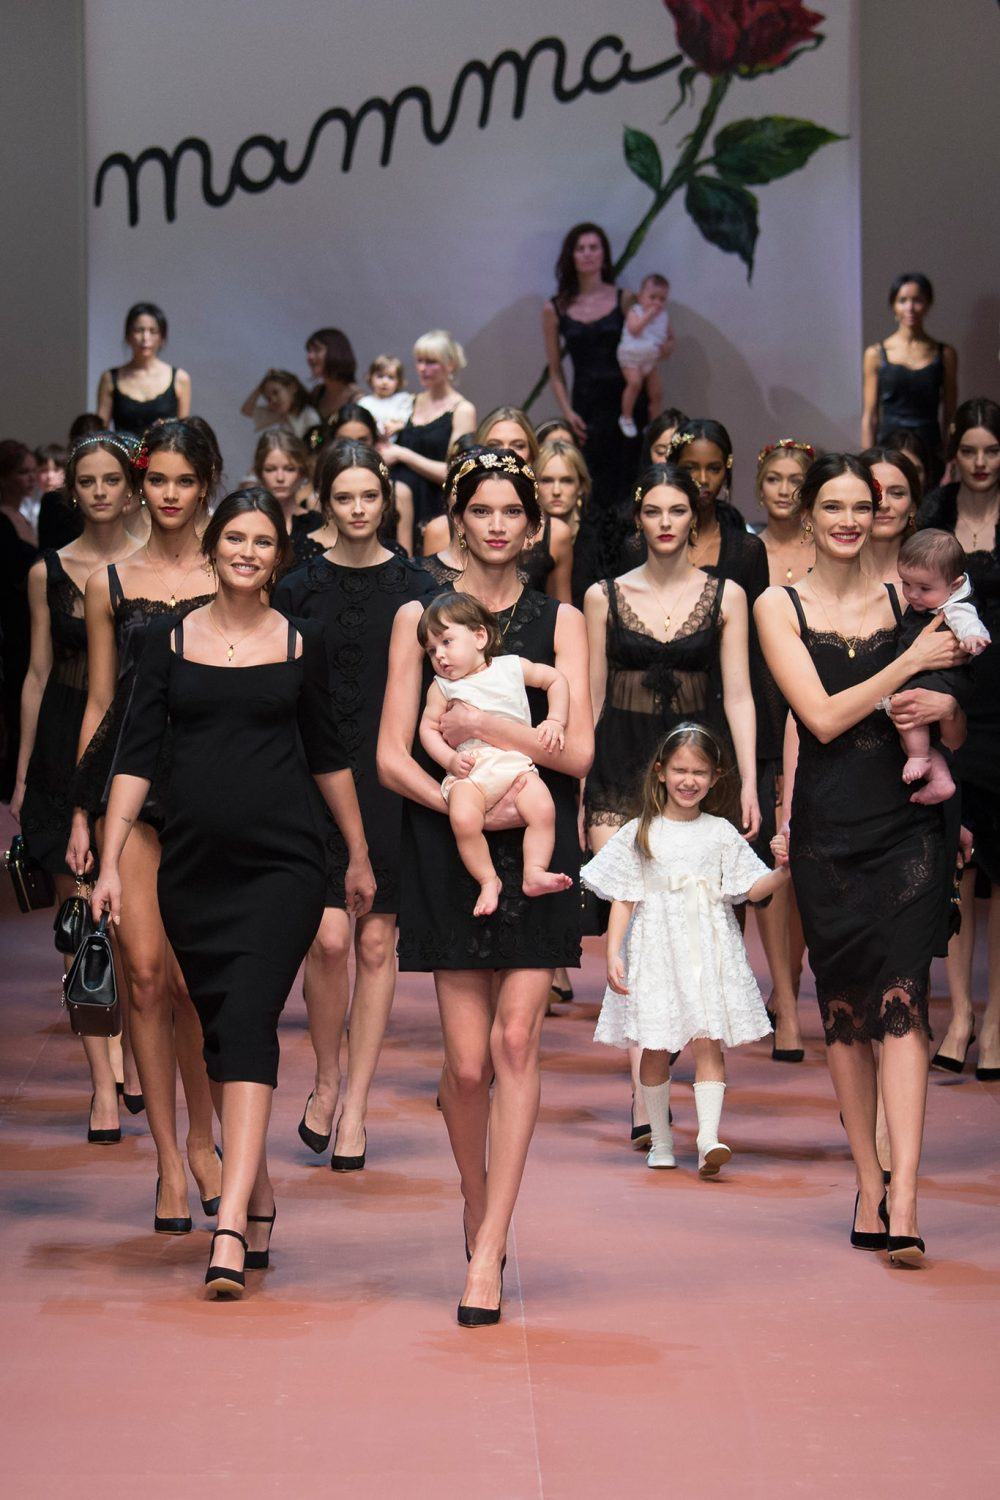 Dolce & Gabbana Sends Pregnant Model & Children Down the Runway